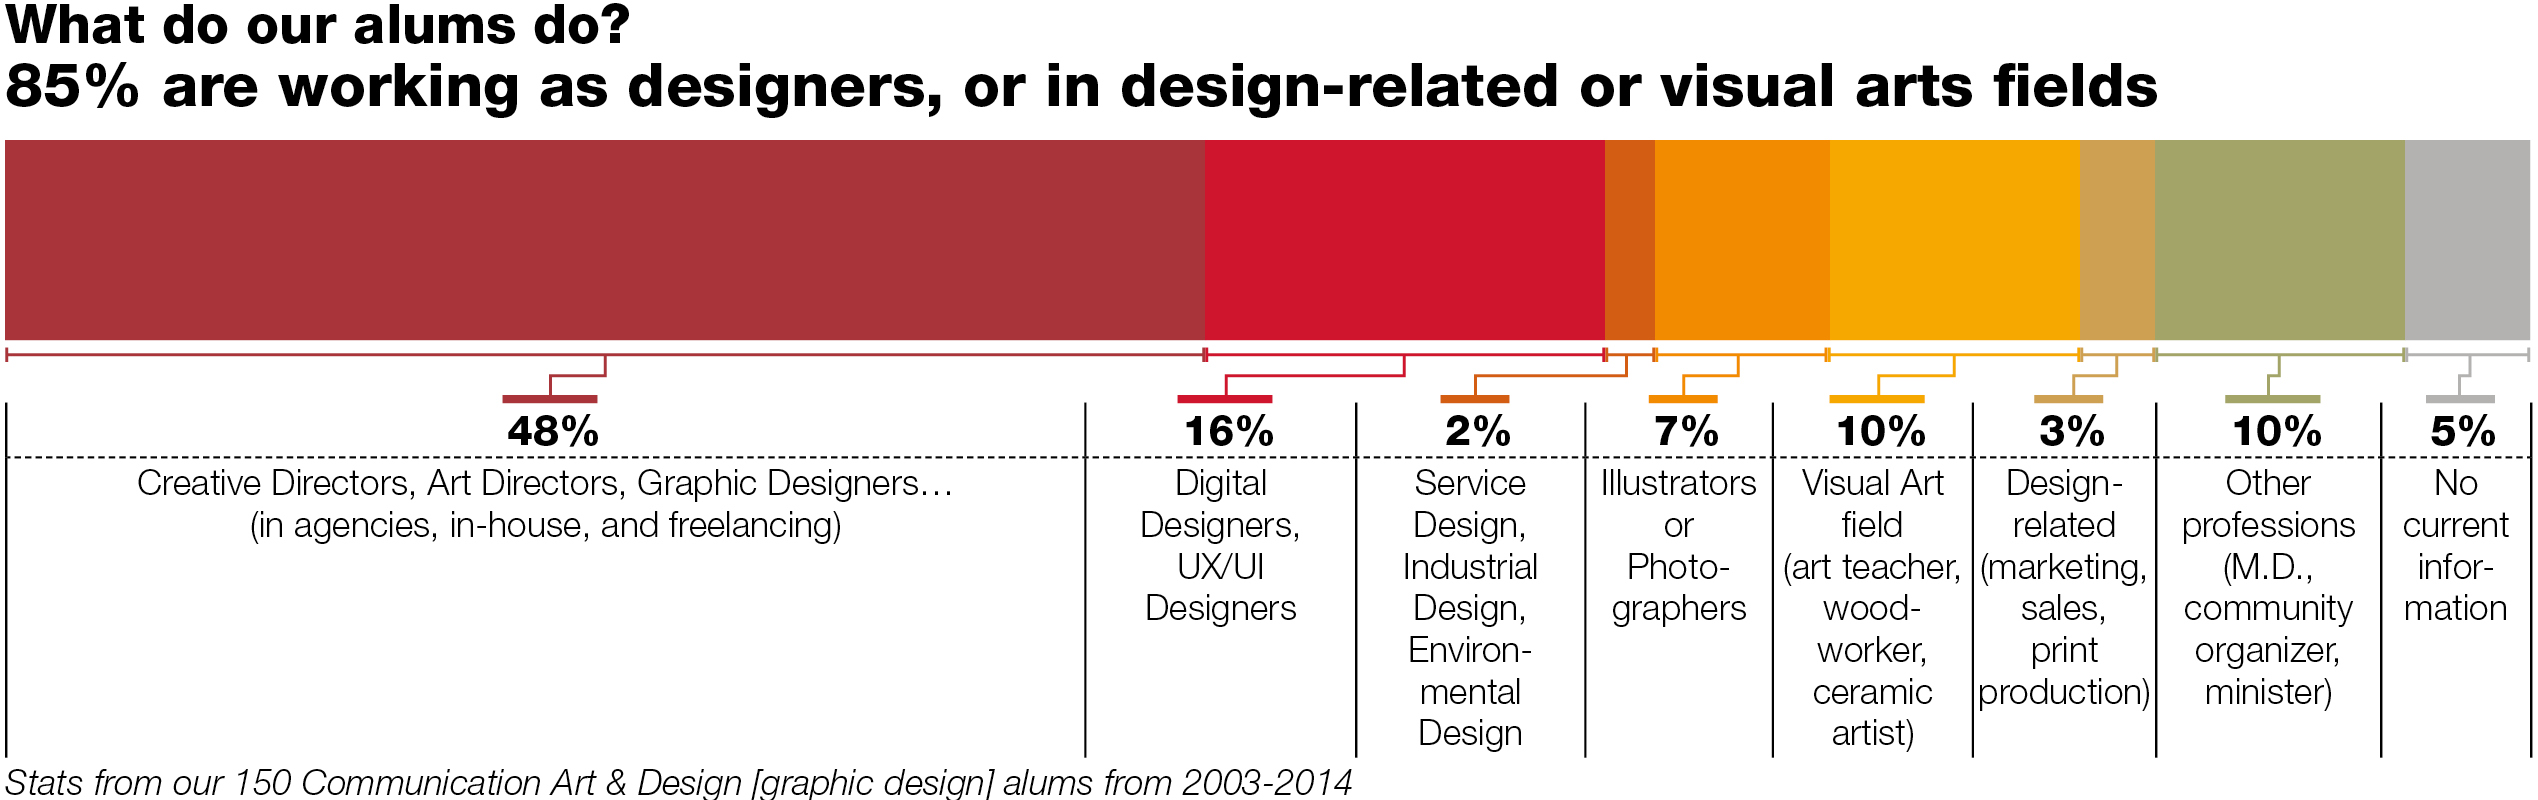 what do our alums do? 85% are working as designer, or in design related or visual arts fields.  Graph shows art students in professional fields.